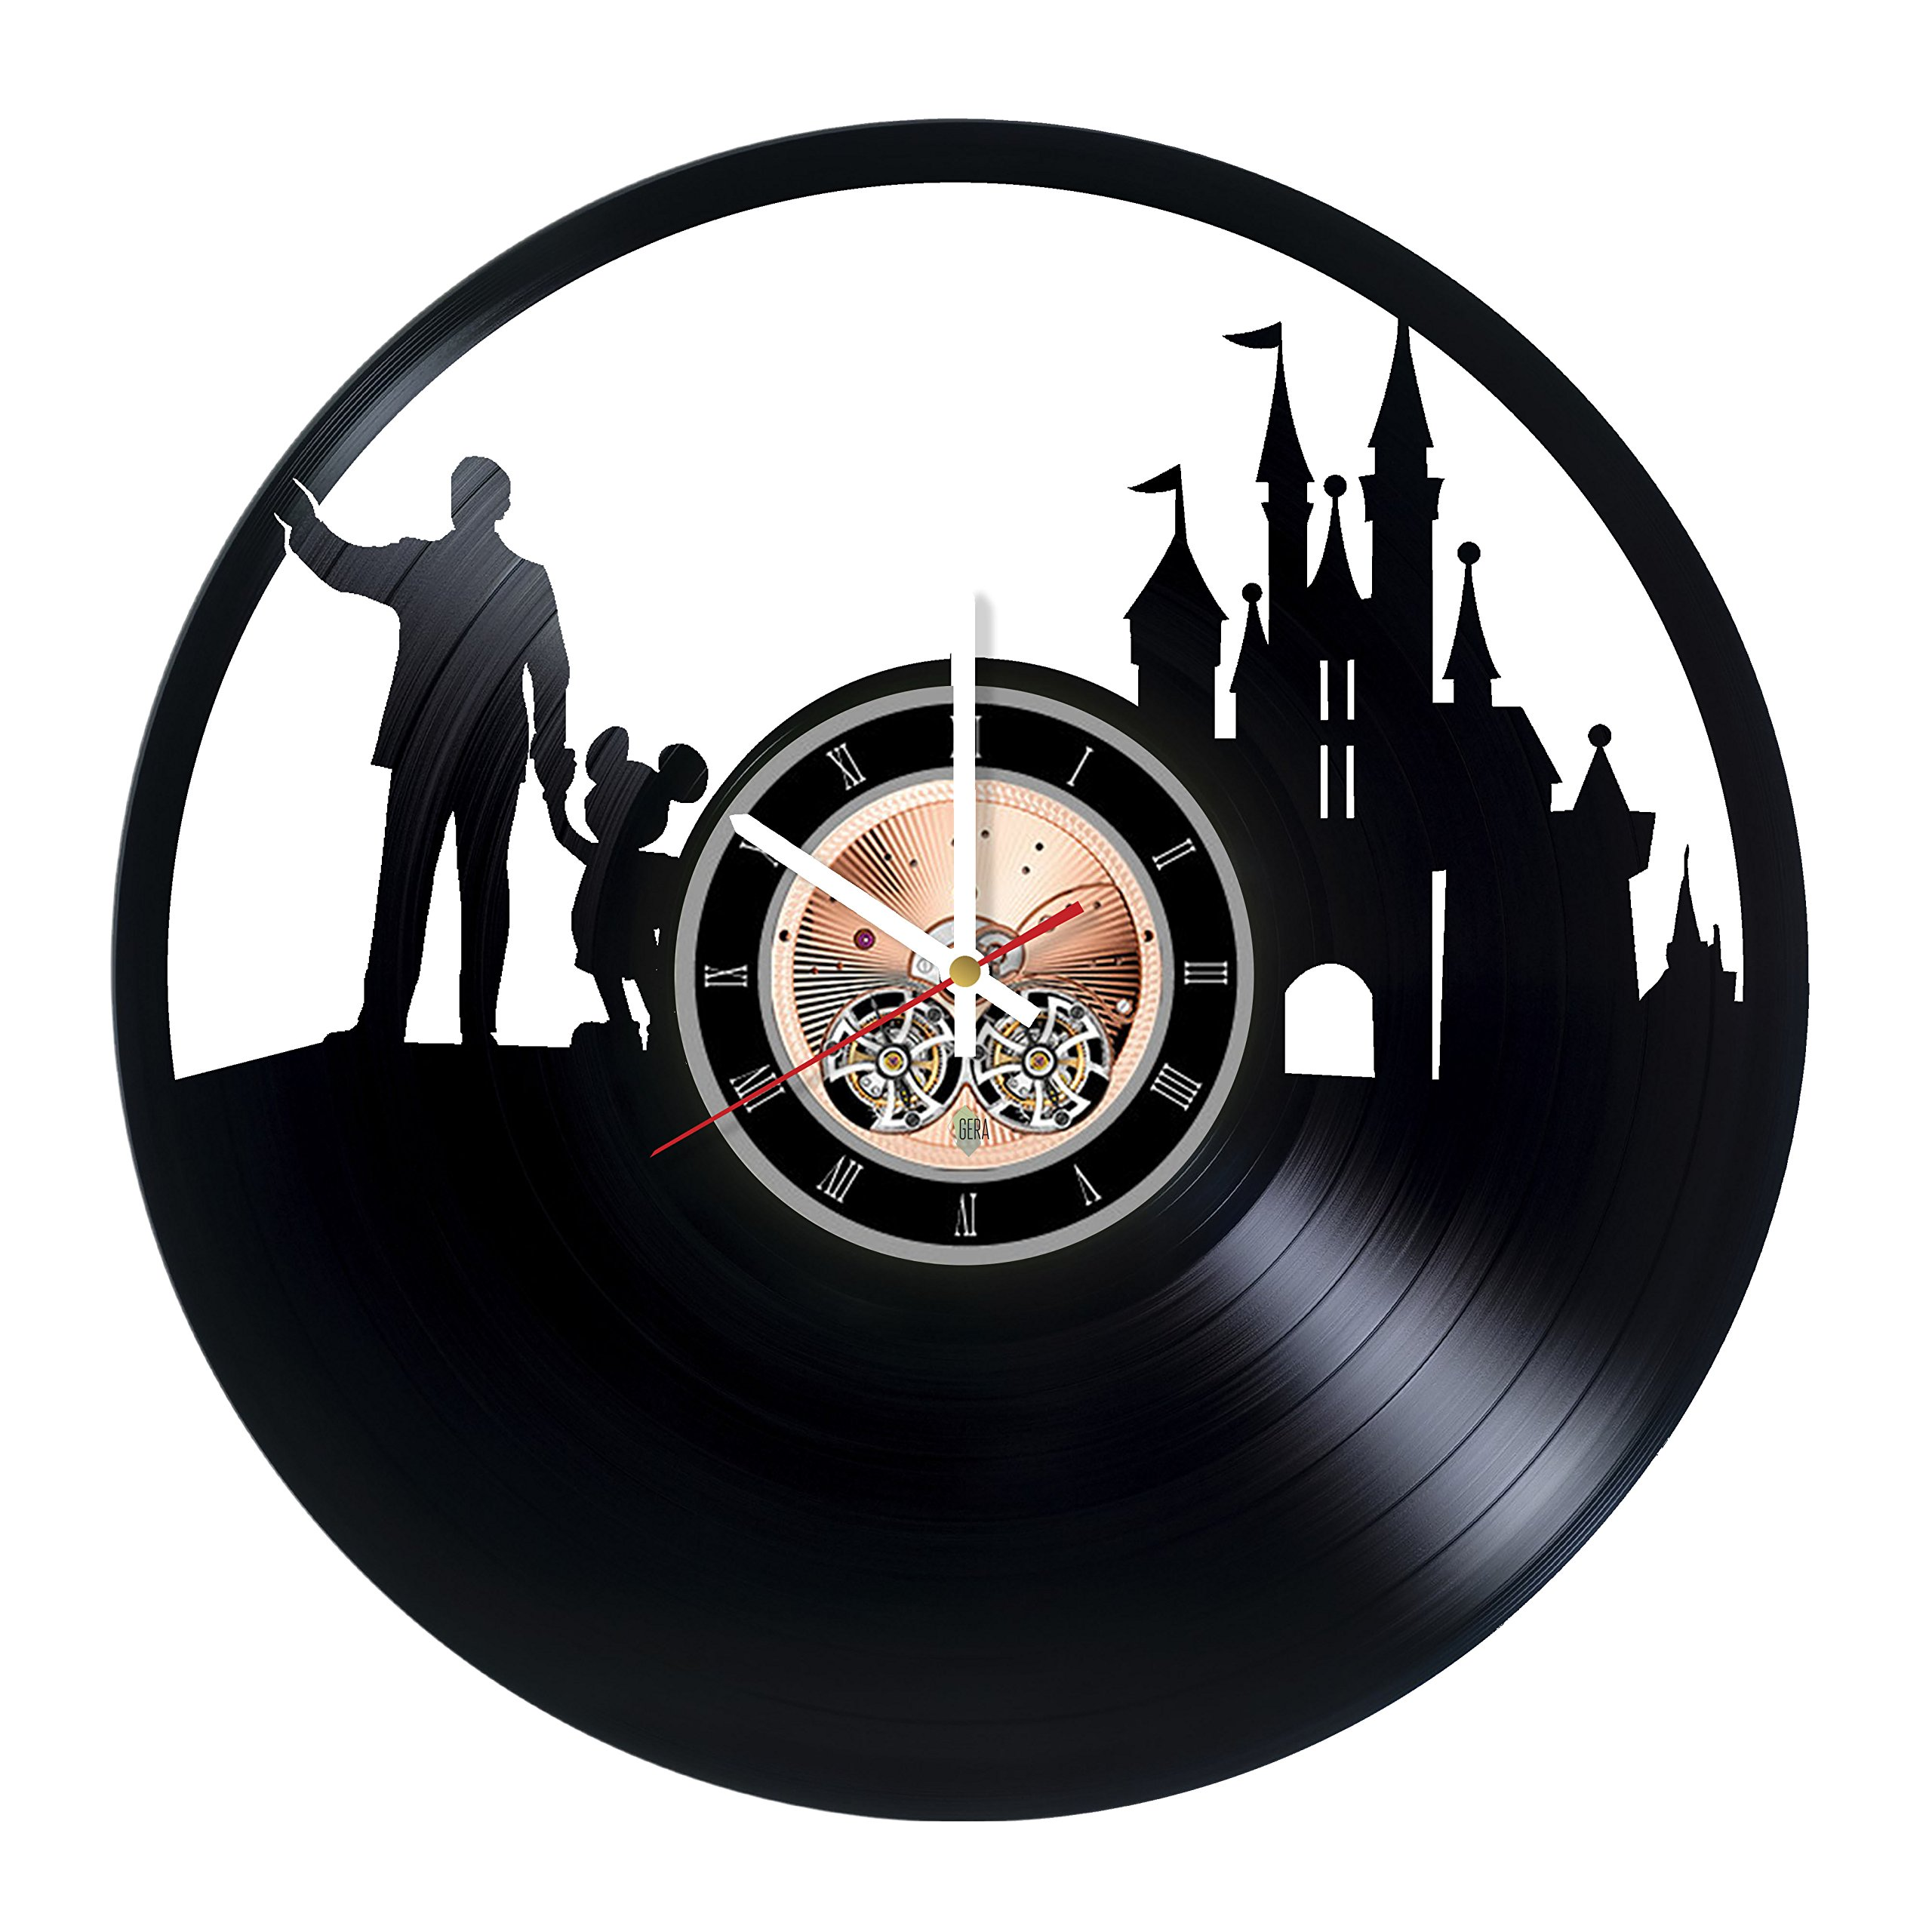 The Walt Disney Vinyl Record Wall Clock - Kids Room wall decor - Gift ideas for children, baby, brother and sister - Funny Cartoon Unique Art Design